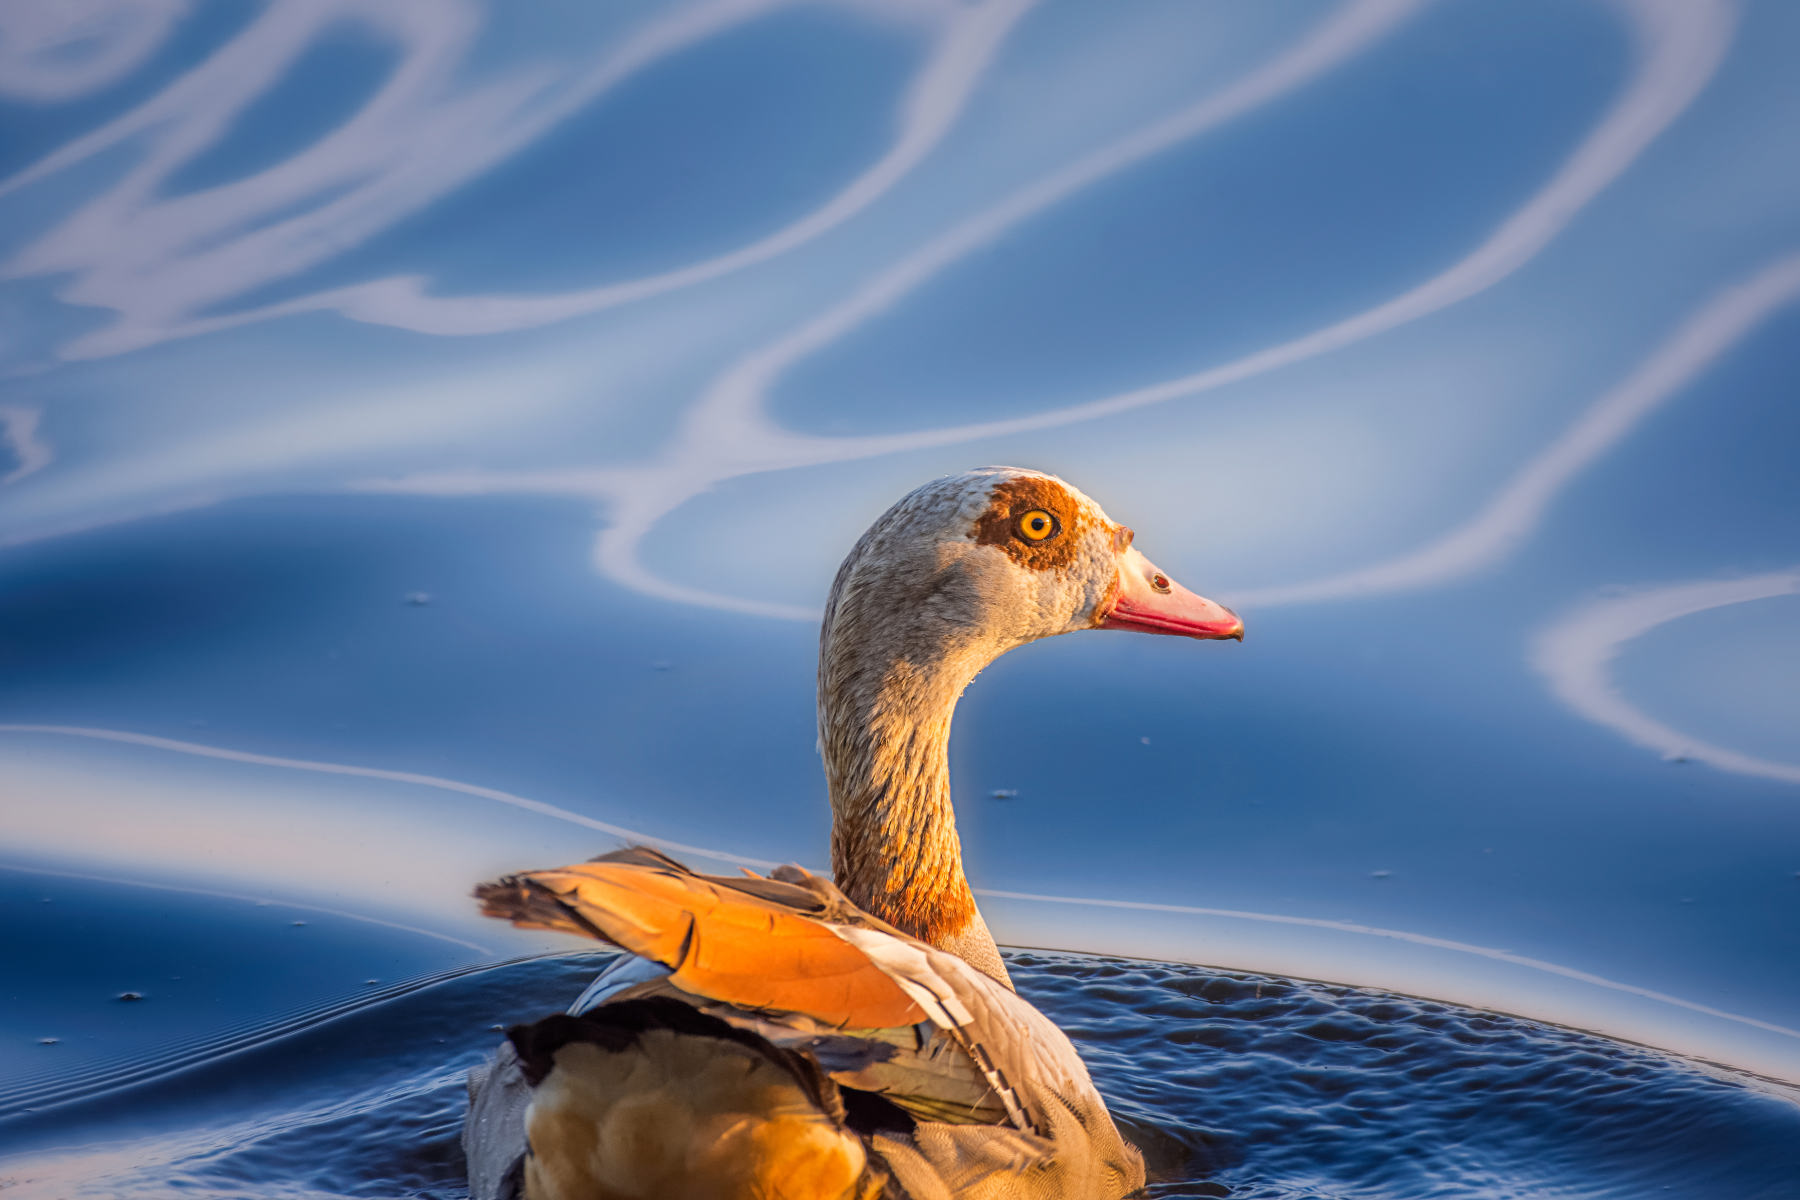 goose swimming amid wavy light patterns on water